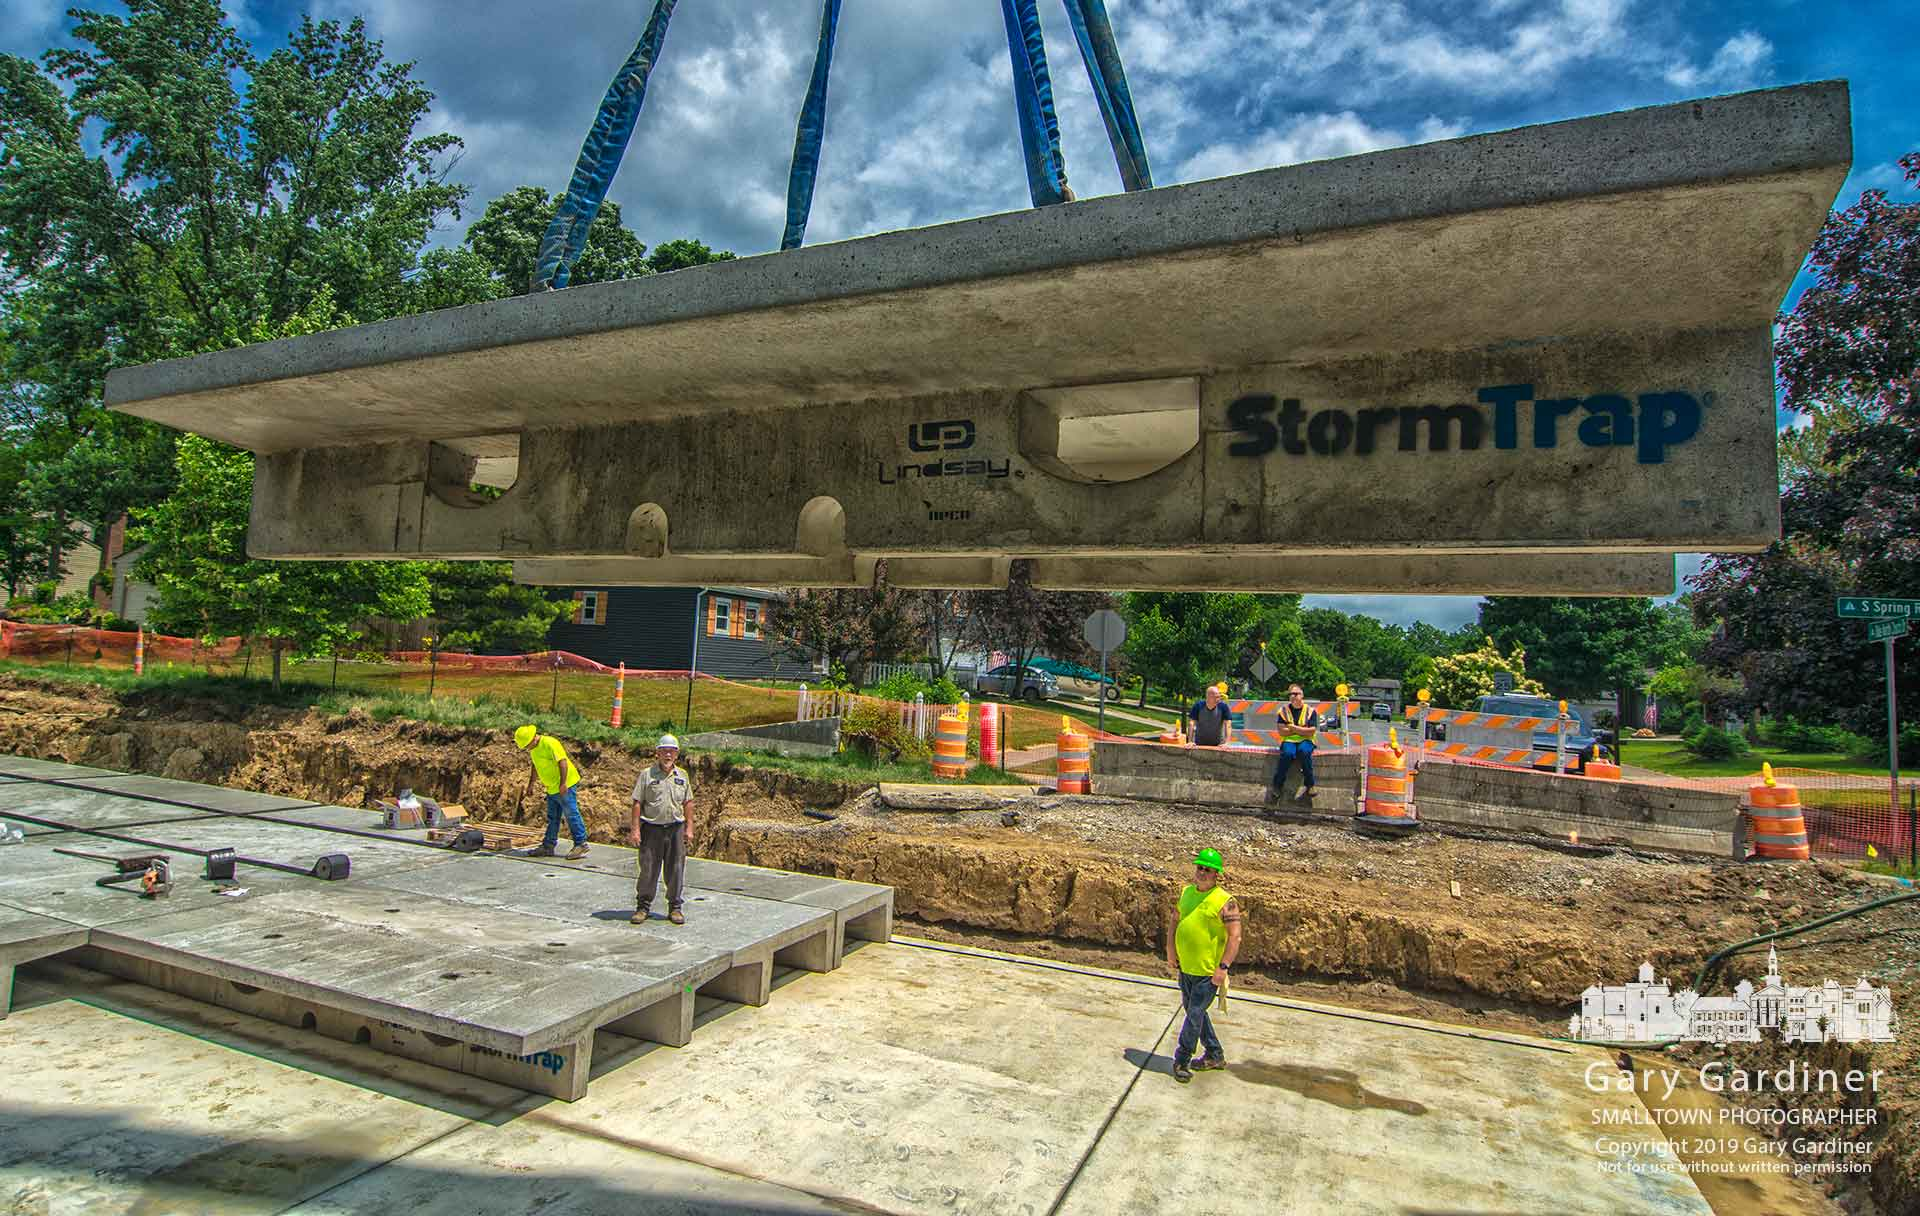 A concrete storm drain baffle is lowered into place on Spring Road as contractors near completion of the first of four underground temporary storage systems designed to regulate heavy runoff along Spring. My Final Photo for June 5, 2019.